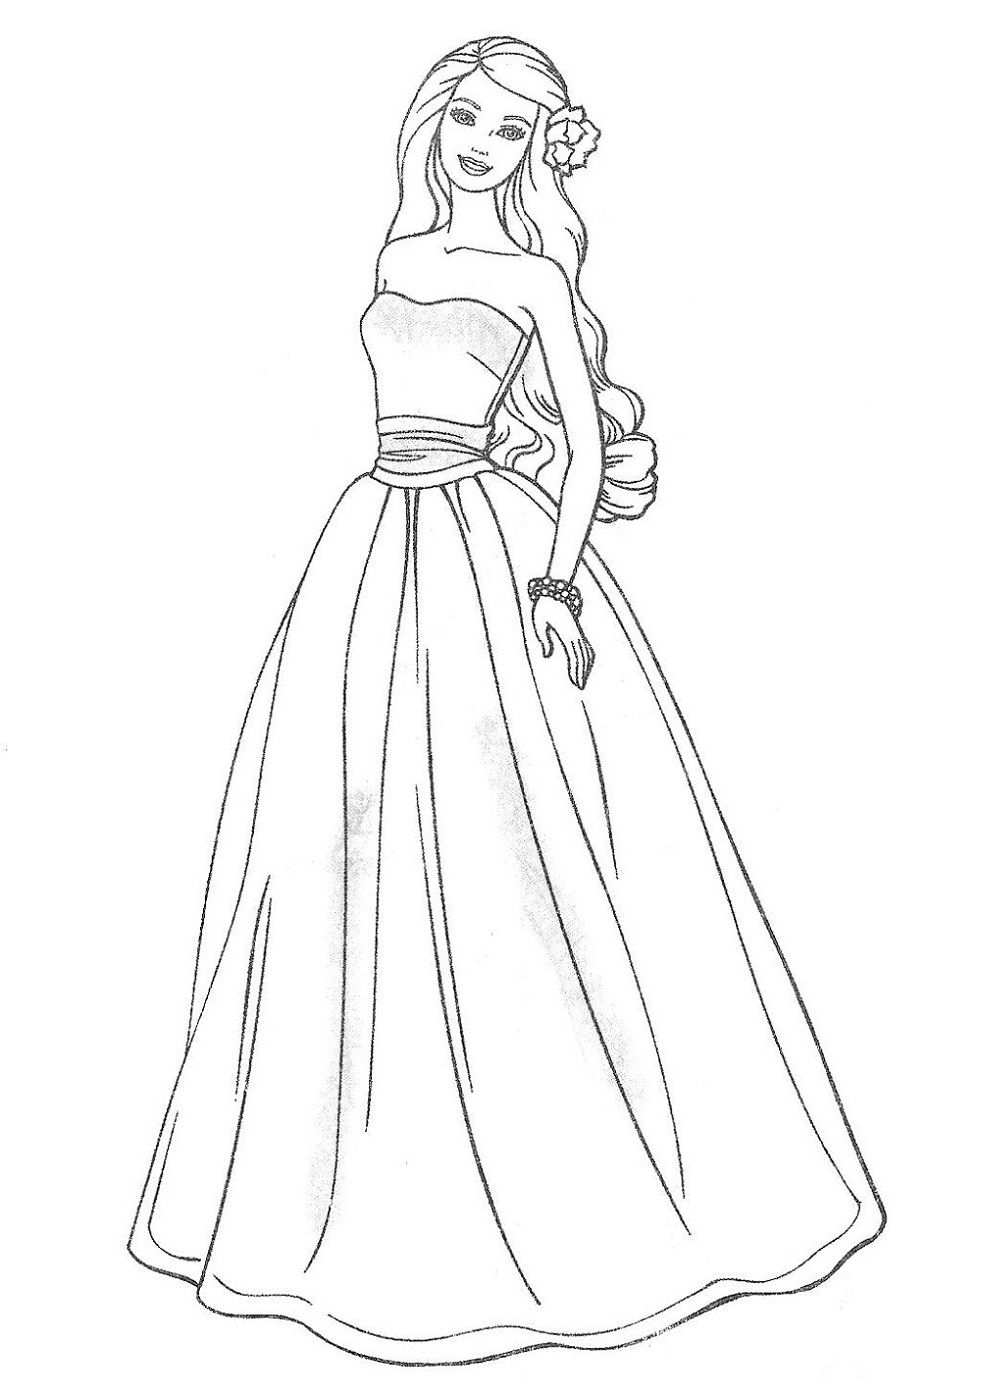 Coloring Pages Dresses : coloring, pages, dresses, Wedding, Dress, Coloring, Pages, Girls, Activity, Shelter